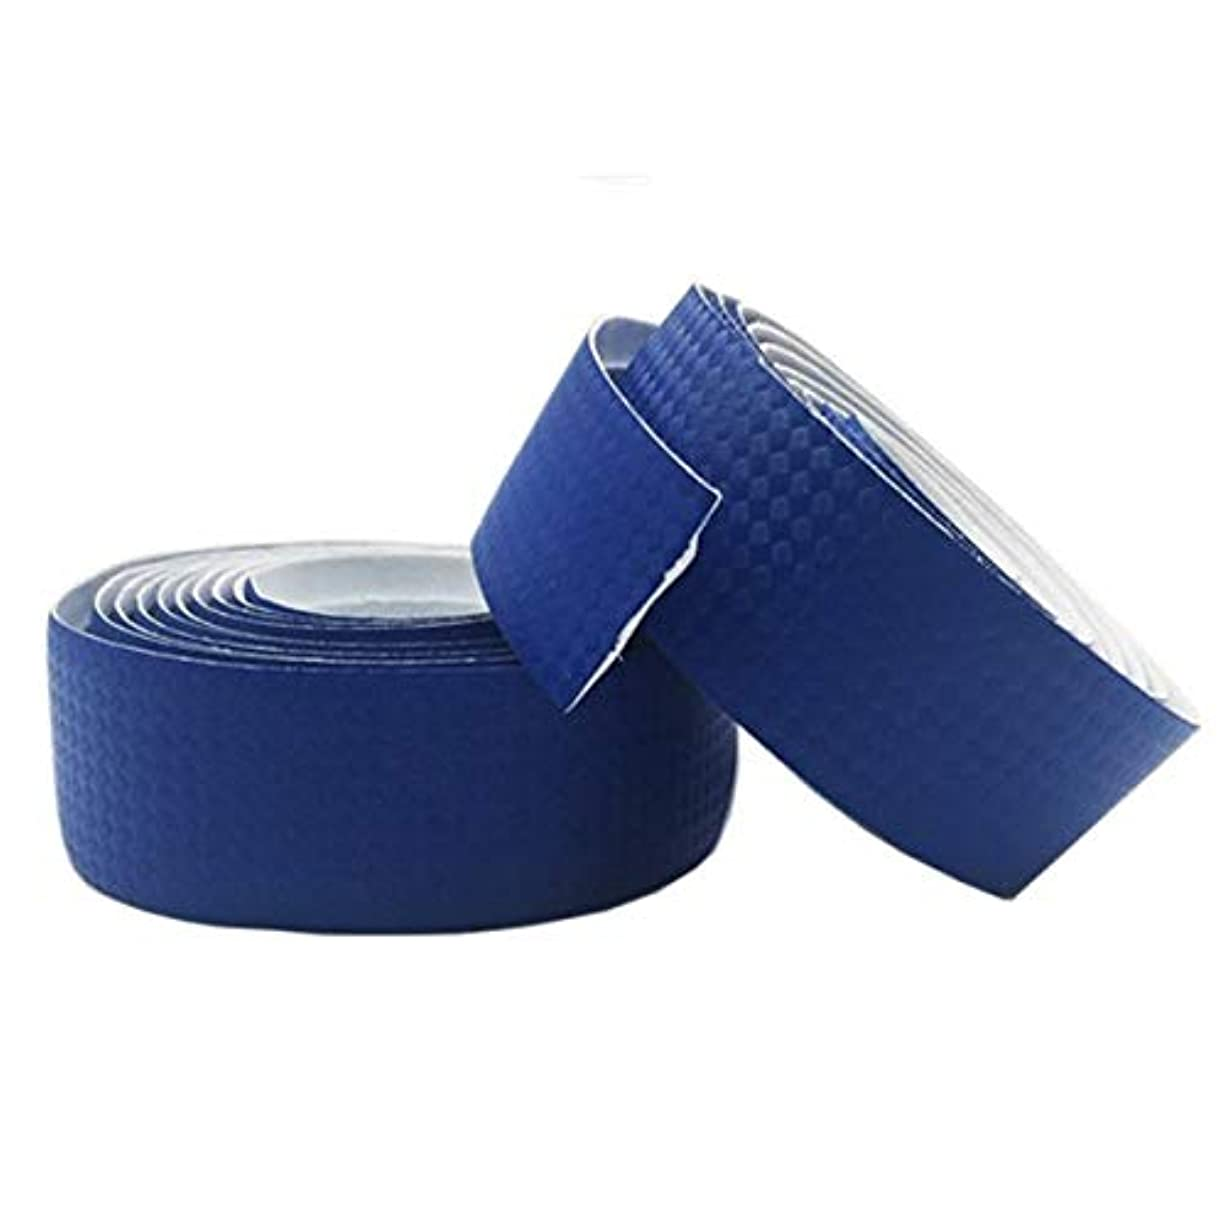 ミサイル練習不安定なPropenary - Bicycle Handlebar Tapes Cycling Road Bike Sports Bike Cork Handlebar Tape 2 Bar Plugs Carbon fiber...